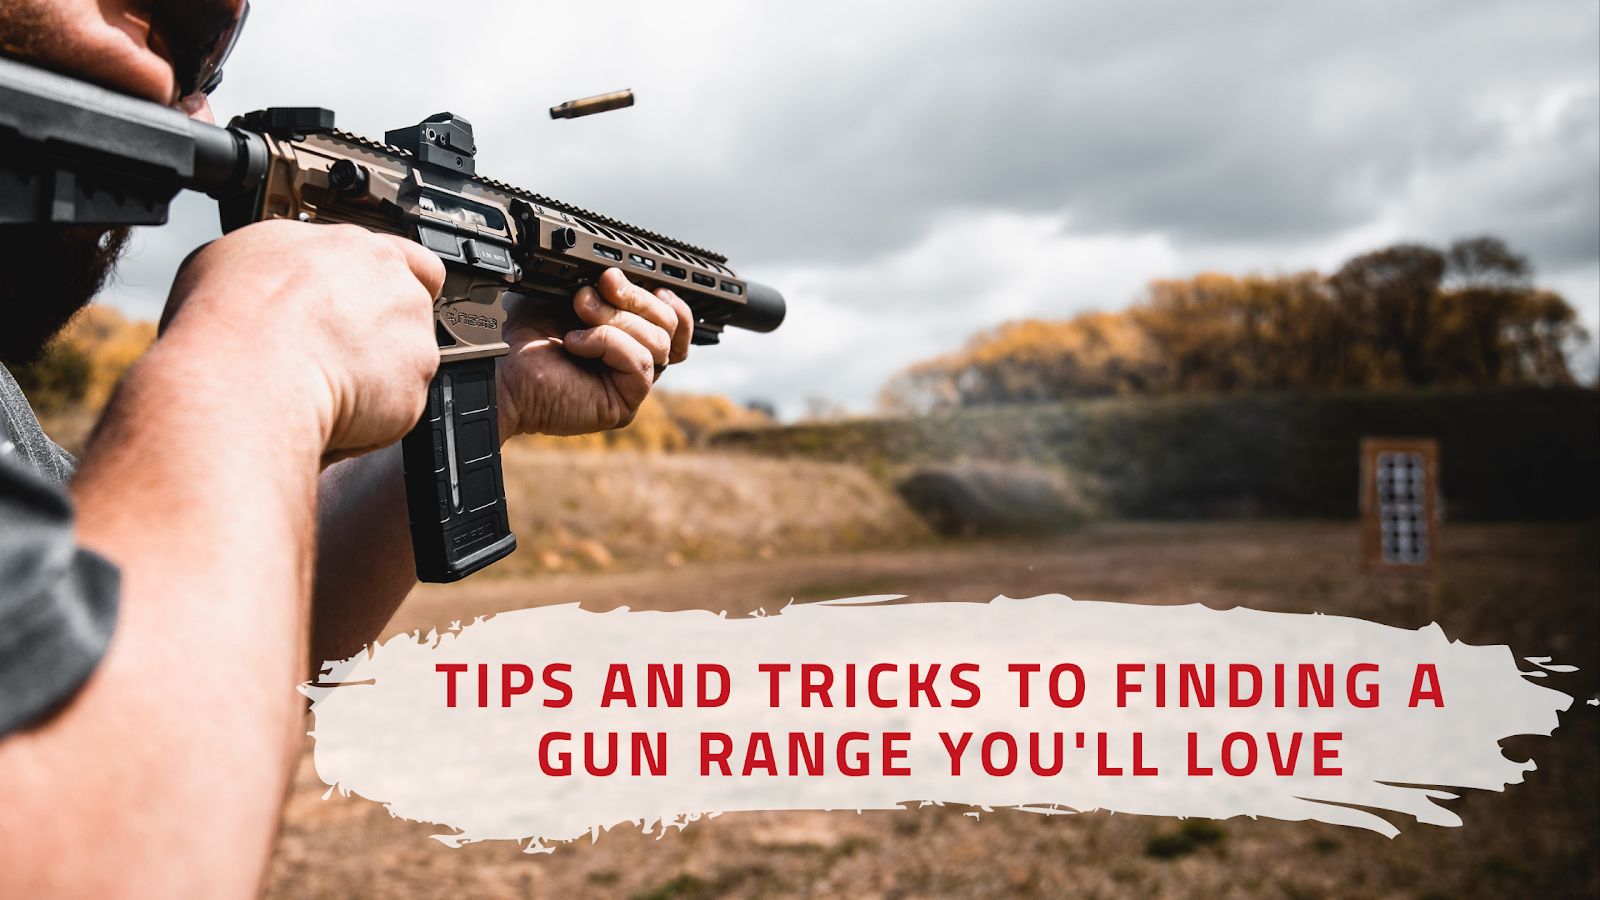 Tips and Tricks to Finding a Gun Range You'll Love